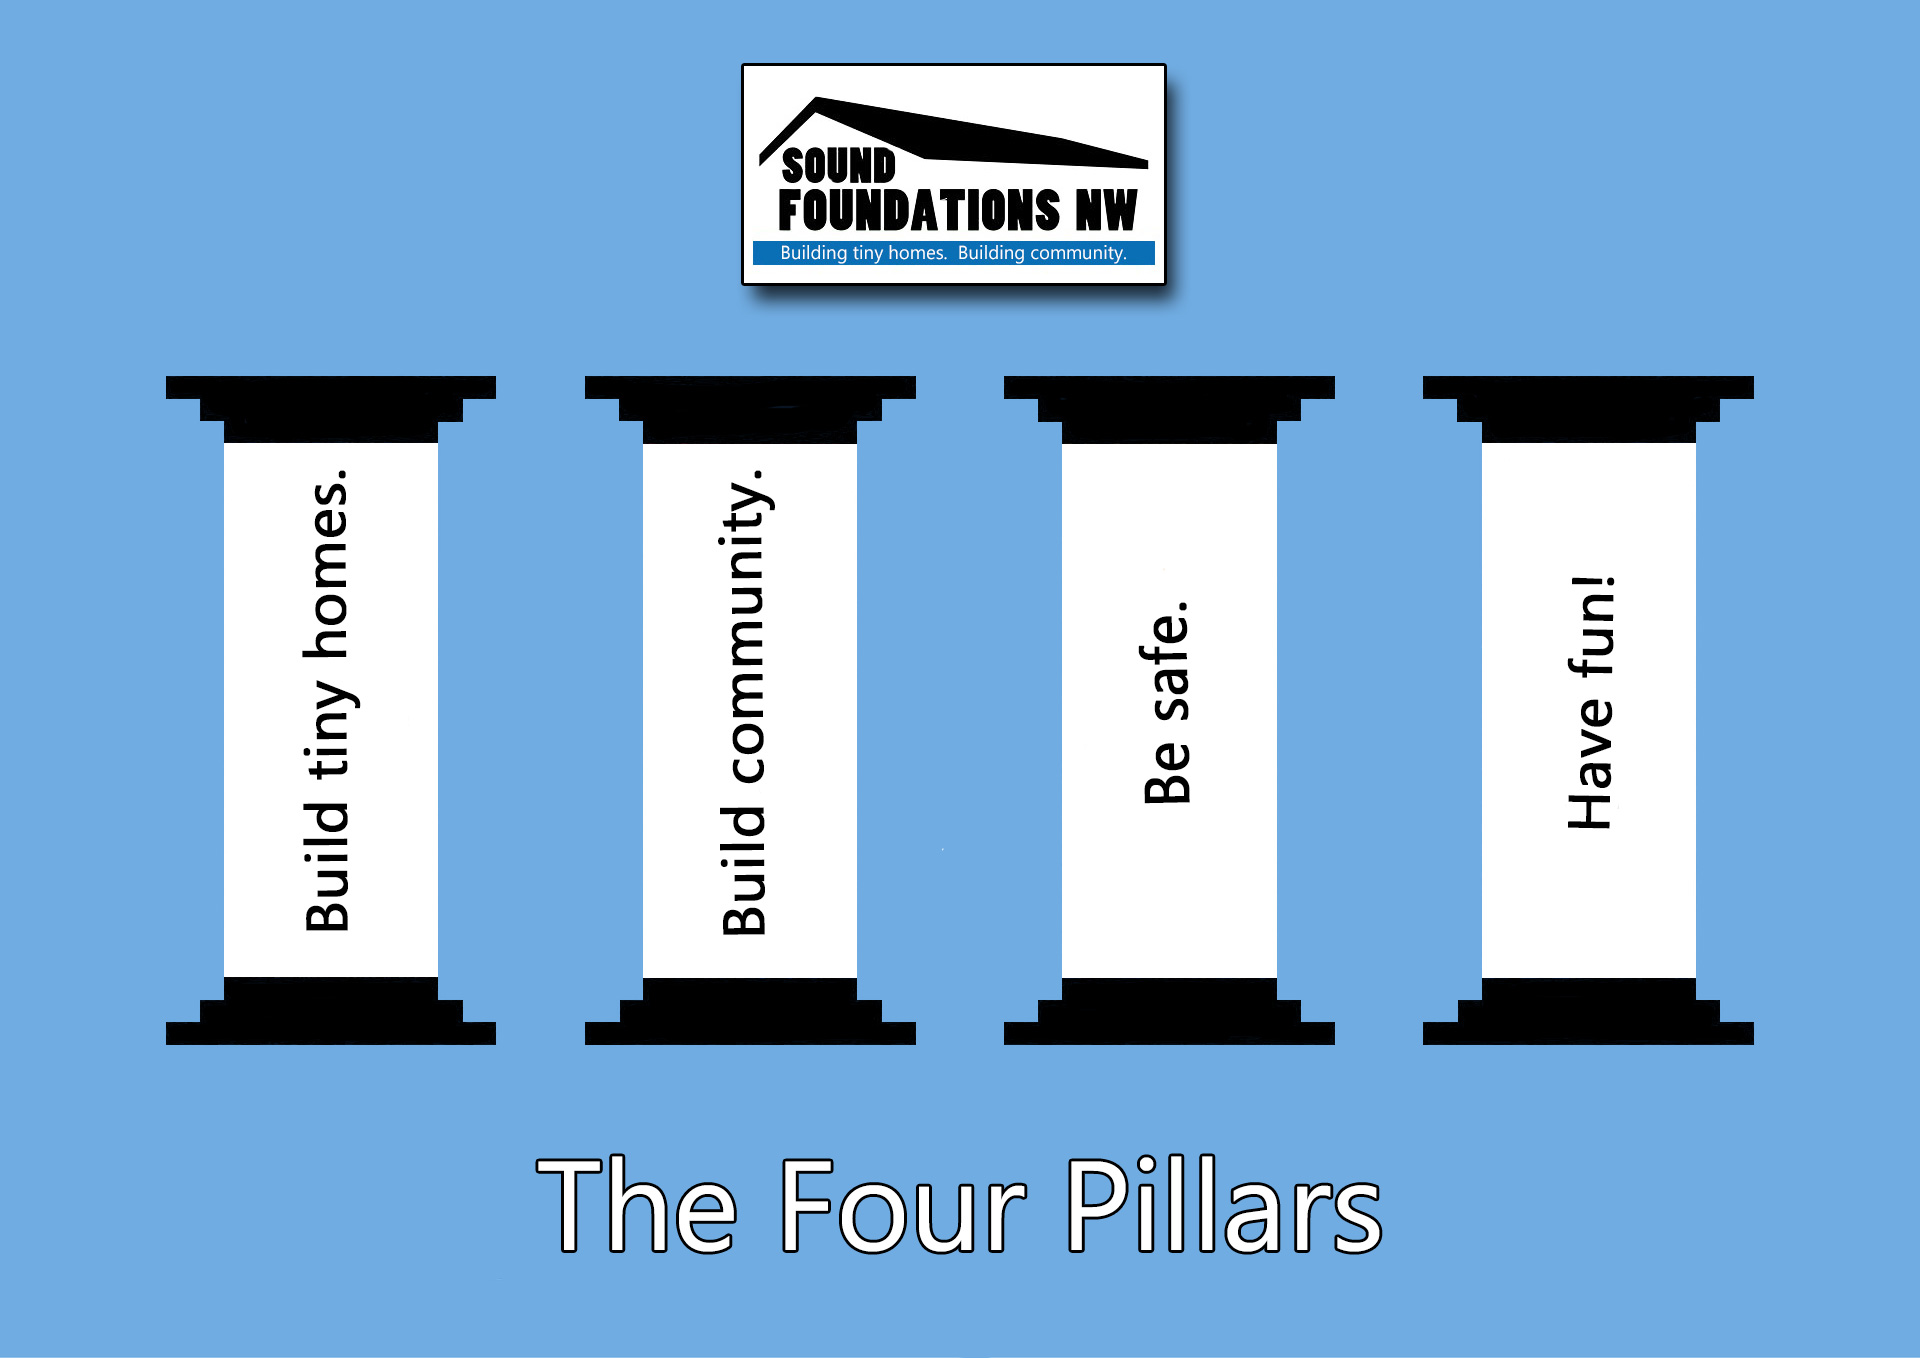 The four pillars of Sound Foundations NW. Build tiny homes for the homeless. Build community. Be safe. Have fun.